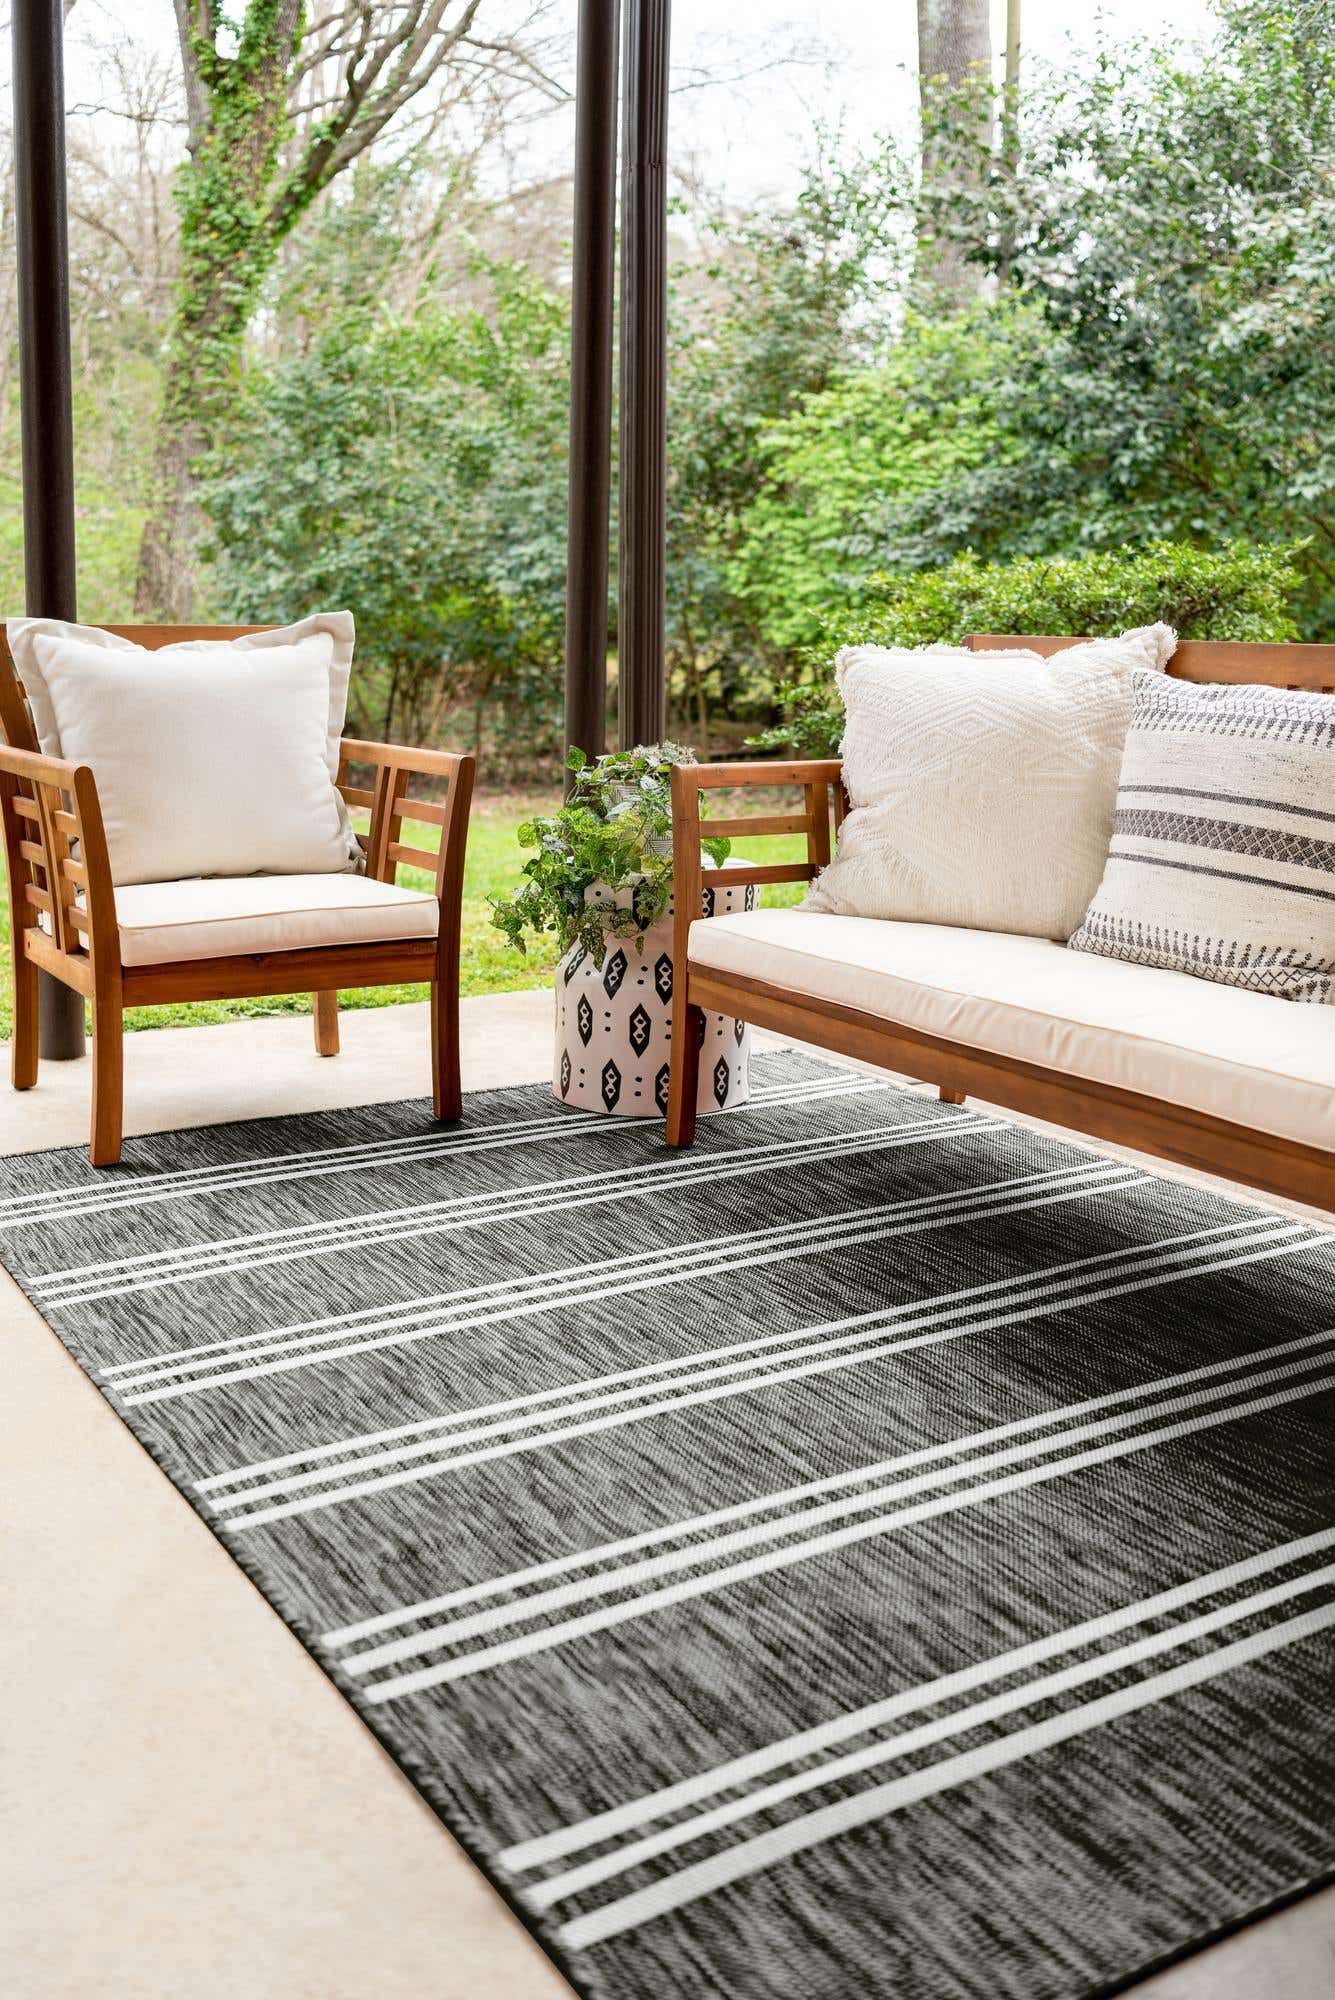 Charcoal Jill Zarin 9 X 12 Jill Zarin Outdoor Rug Rugs Com In 2020 Outdoor Rugs Jill Zarin Indoor Outdoor Area Rugs